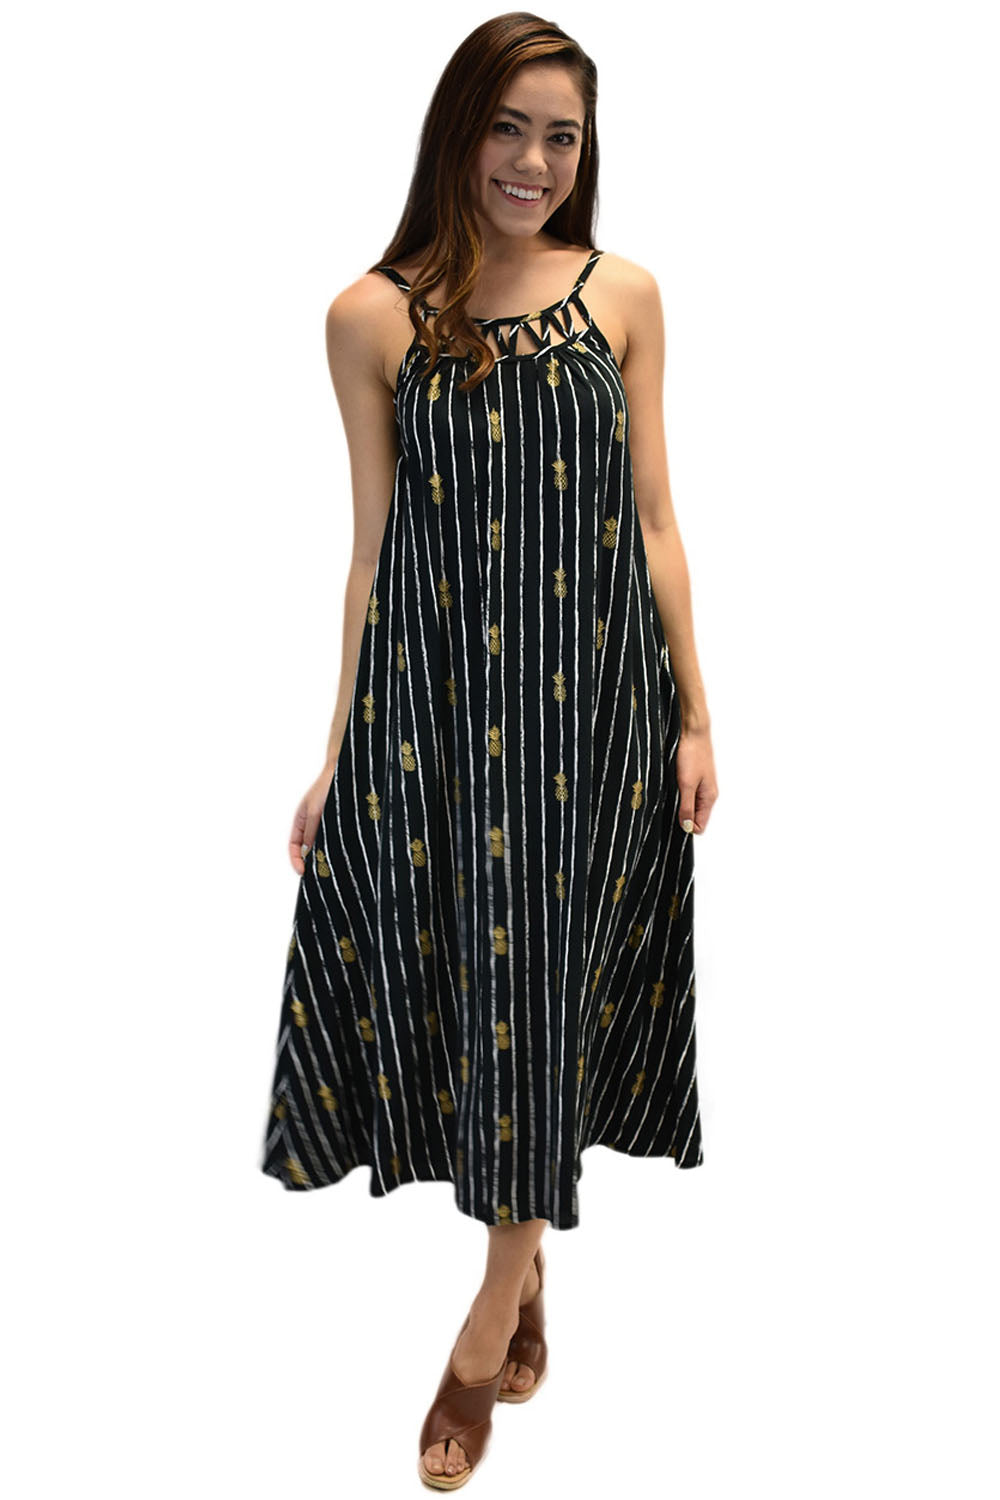 Leilani Dress in Pineapple Print Black